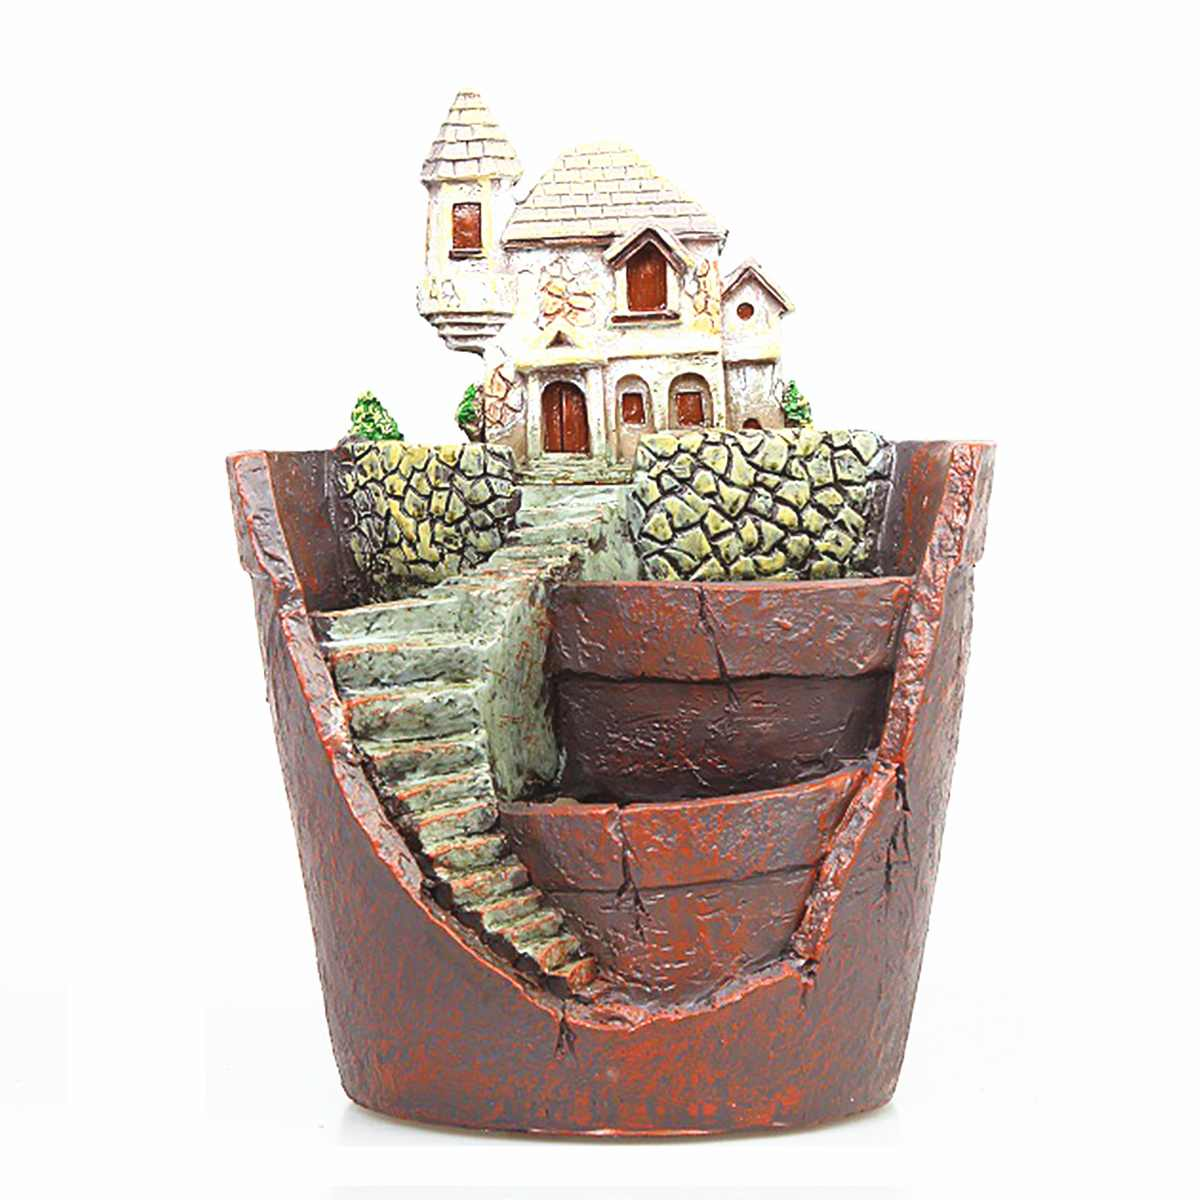 3 Type Succulent Plants Planter Flower Pot Desktop Small Fleshy Plants Herb Mini House Resin Flower Pot Home Garden Decor Craft